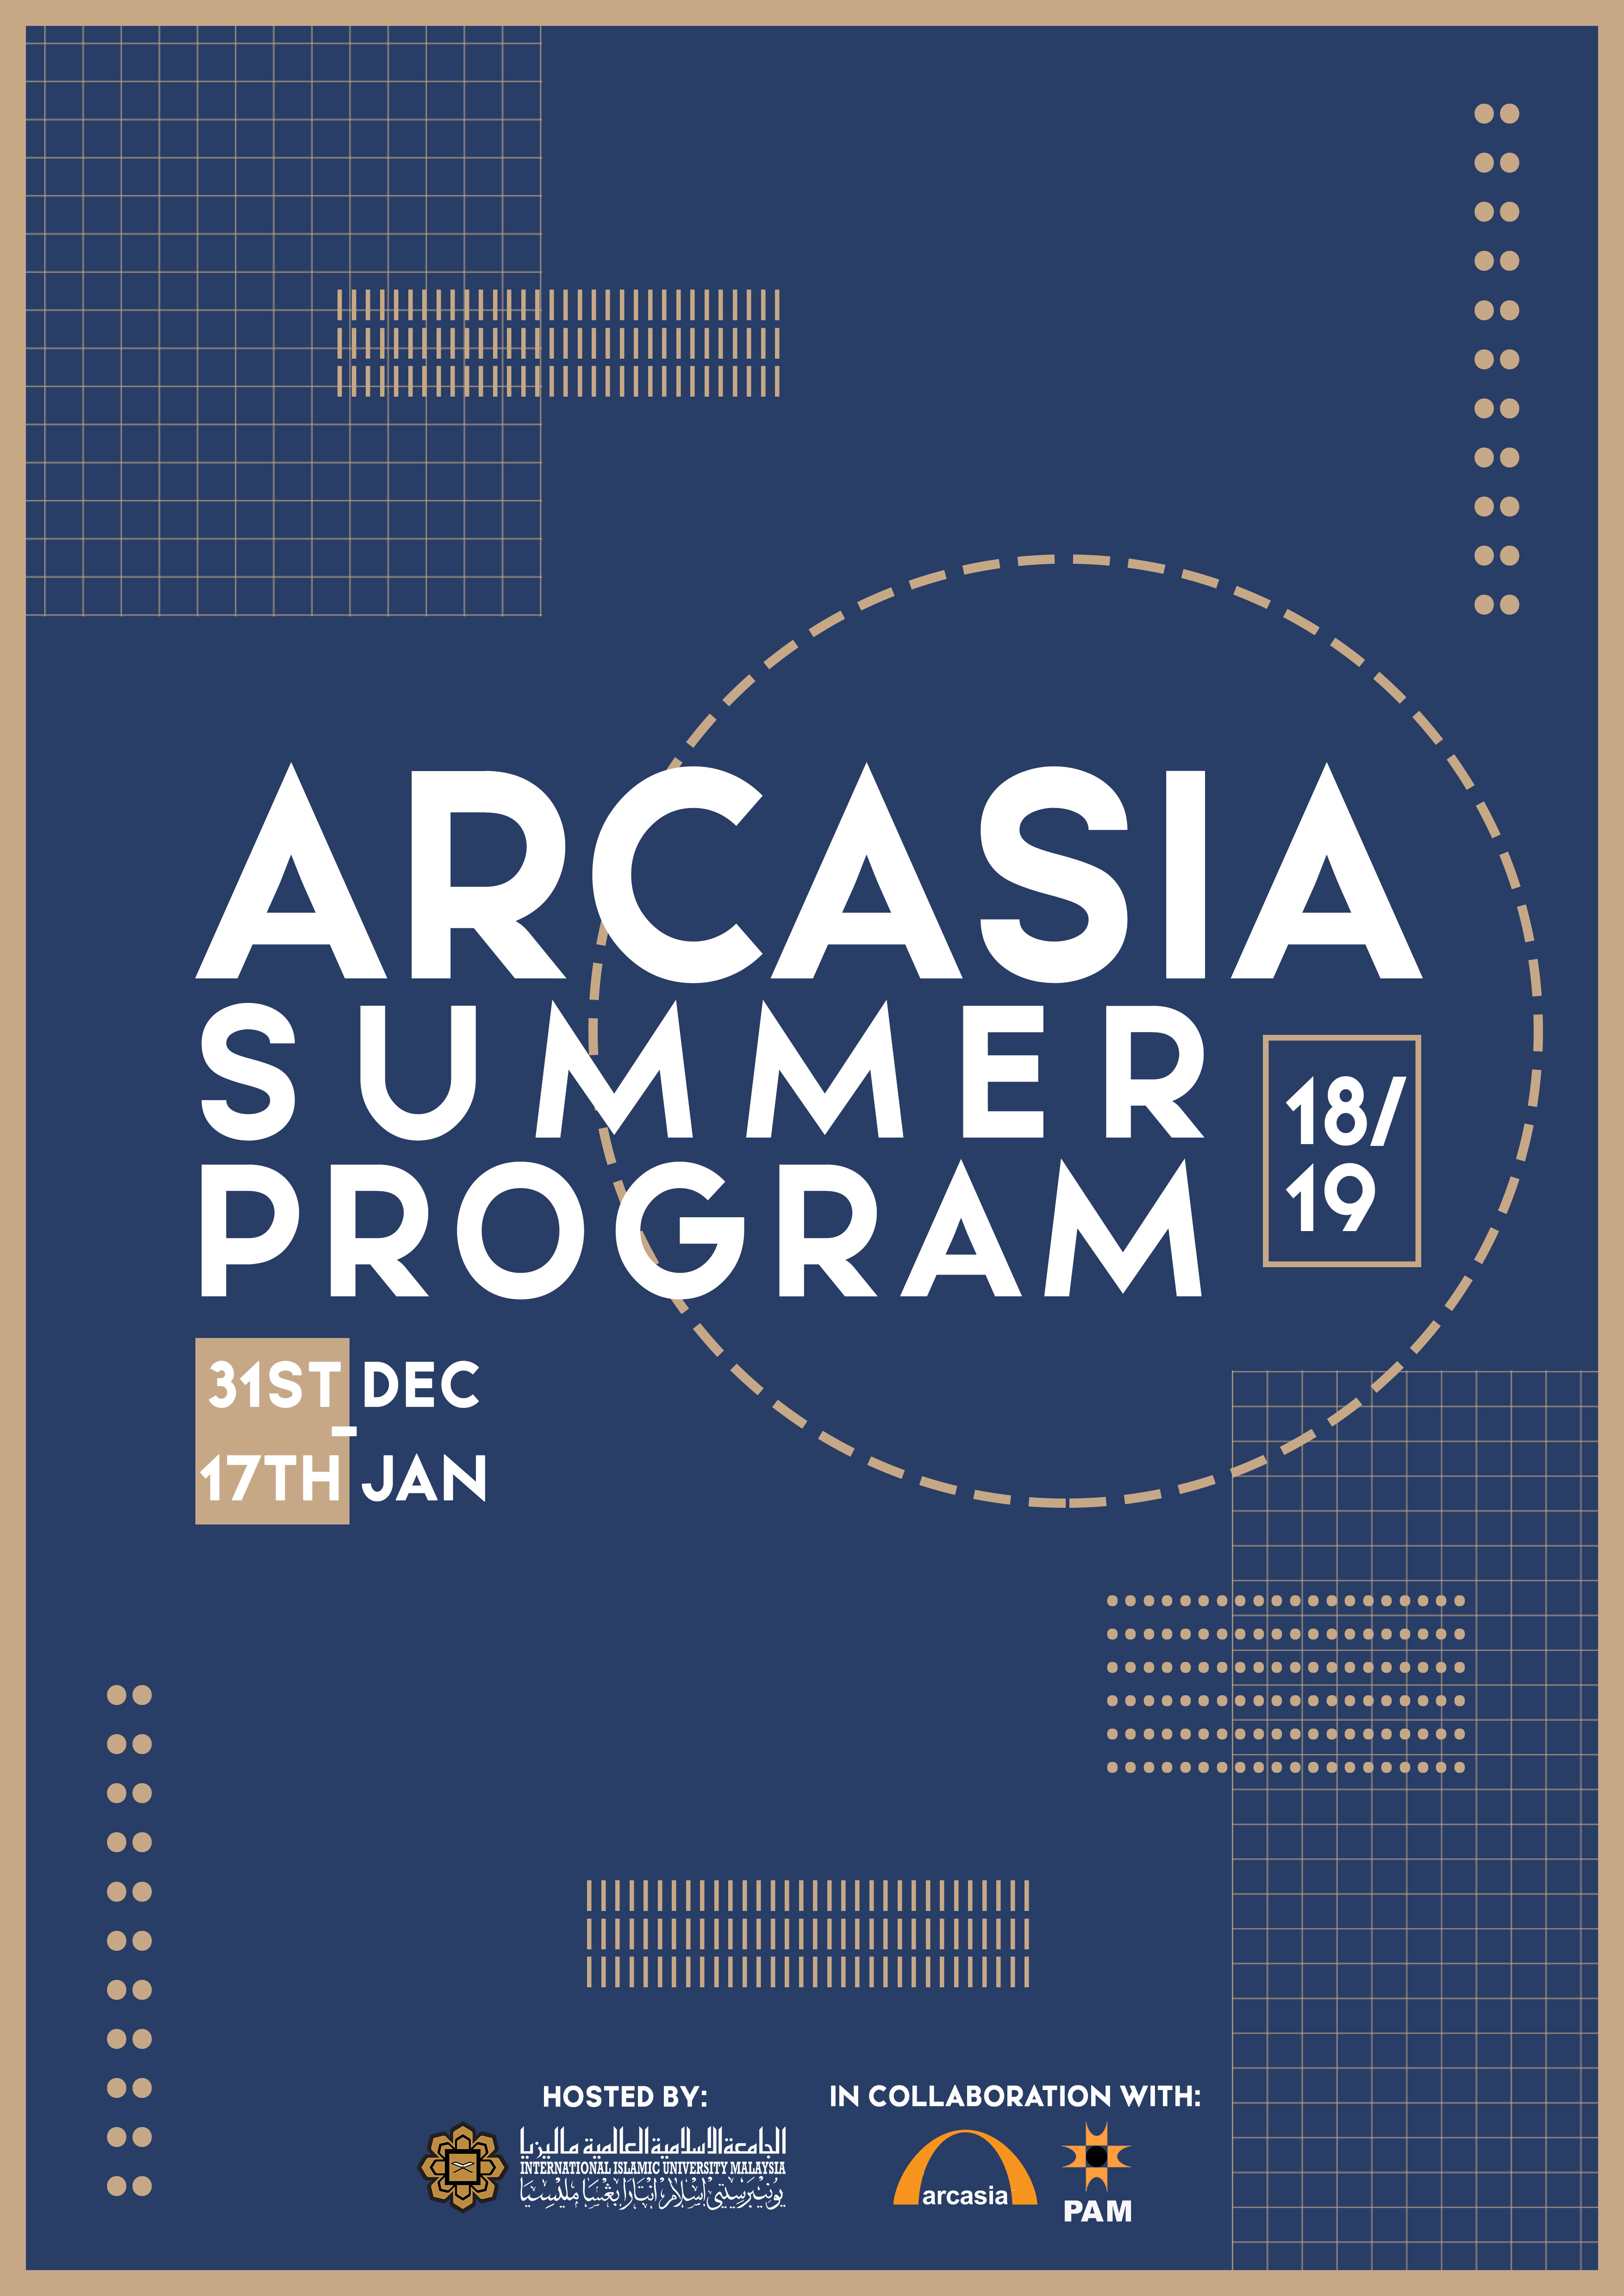 Arcasia Summer Program 18/19